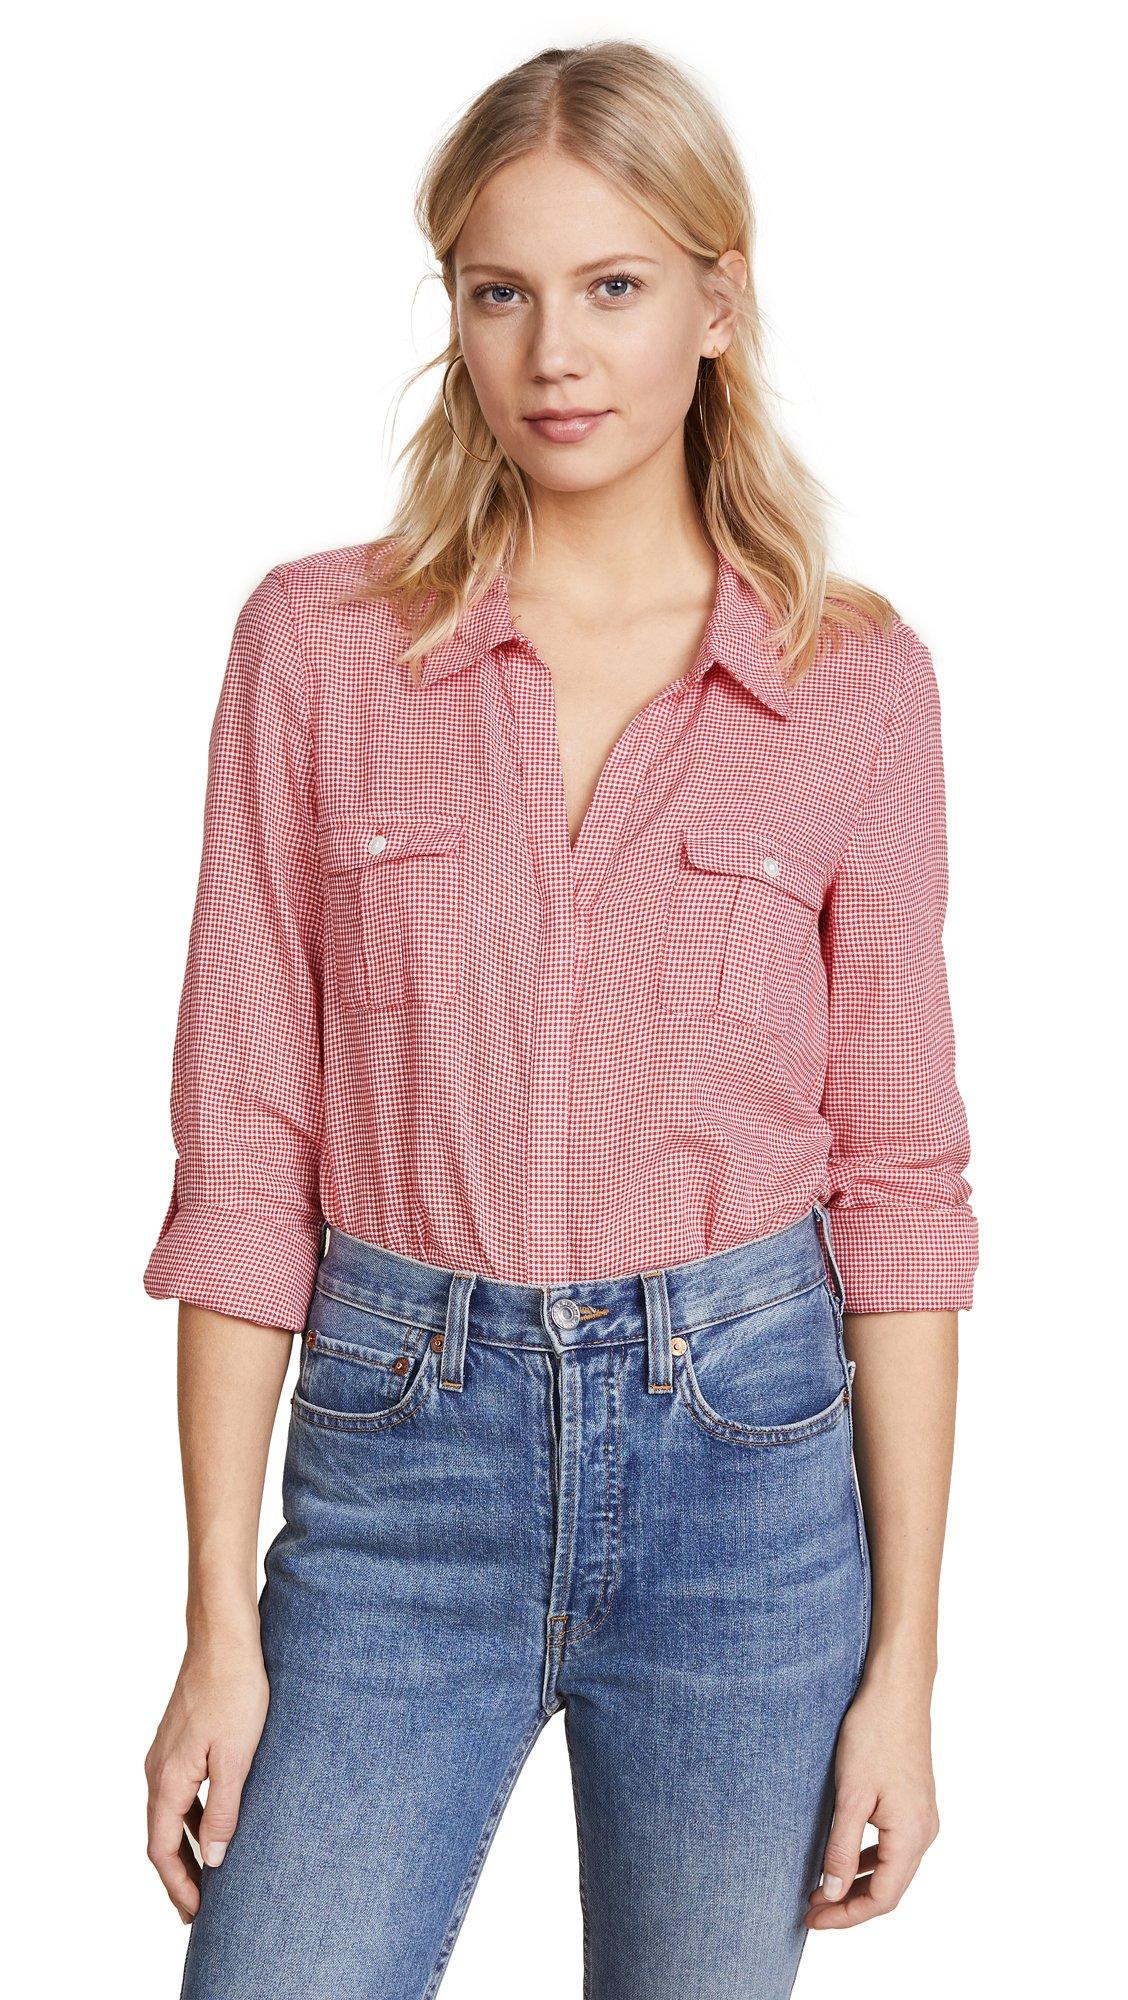 Joie Women's Booker Button Down Shirt, Alarm Red, Small